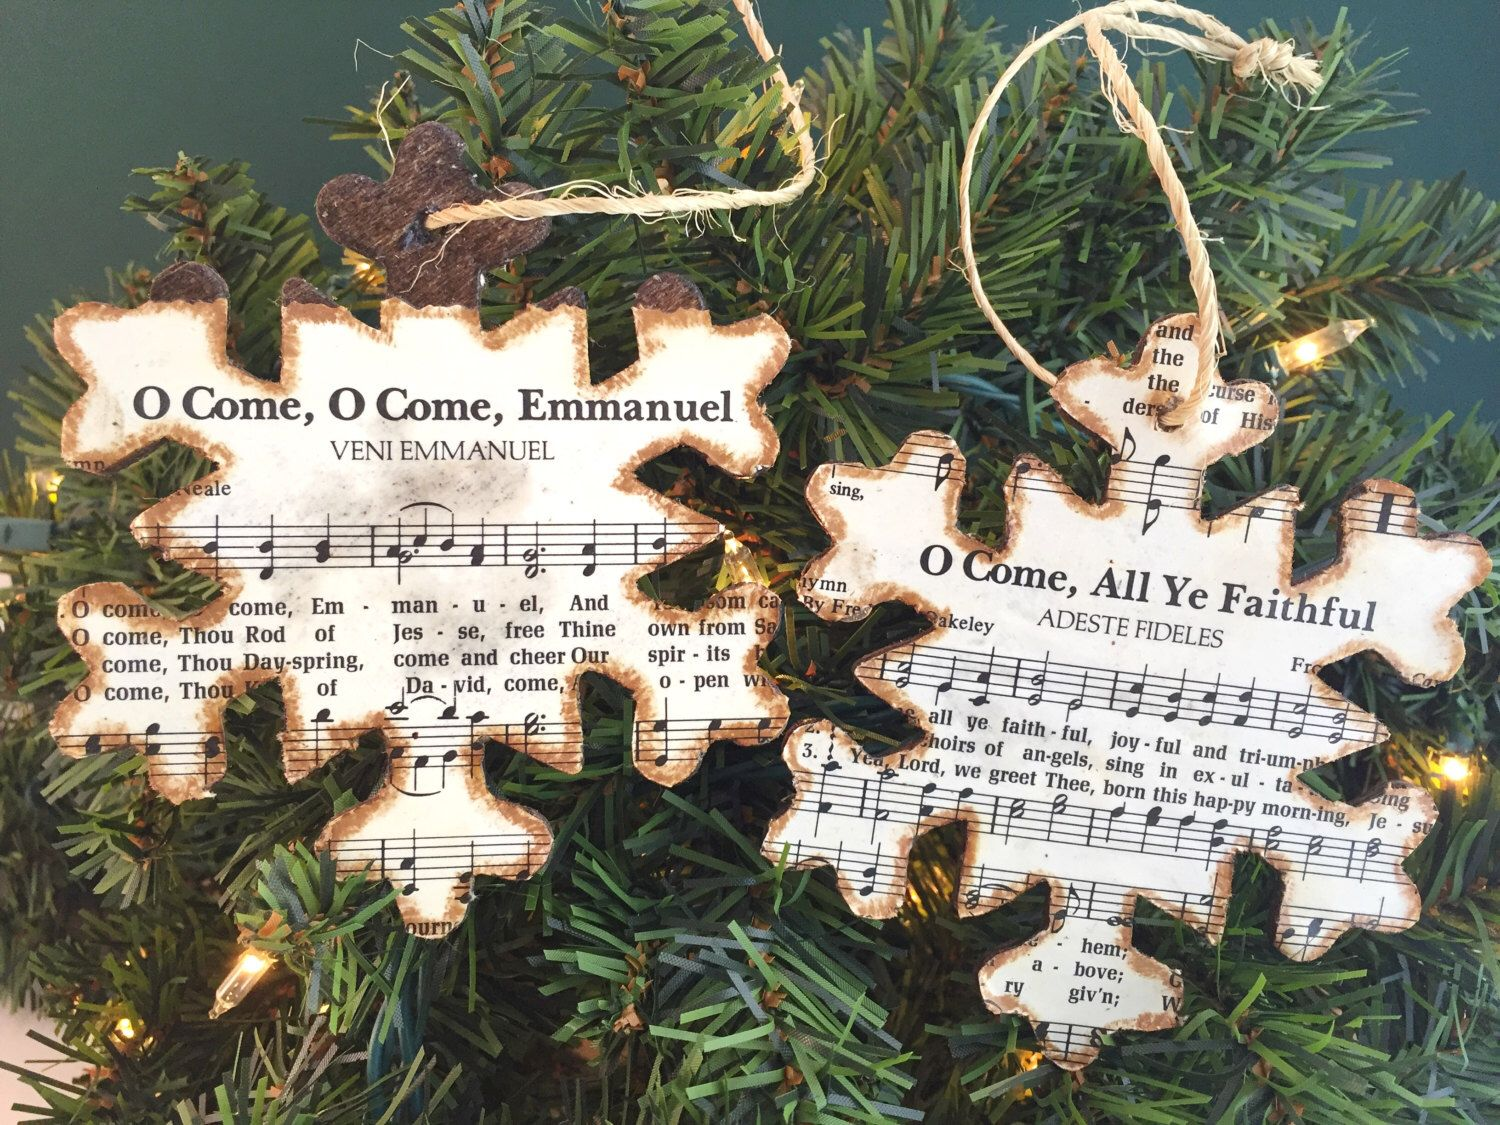 Christmas Music Ornaments Christmas Sheet Music Ornaments Rustic Ornaments Wooden Ornaments S Music Ornaments Christmas Ornaments Music Christmas Ornaments